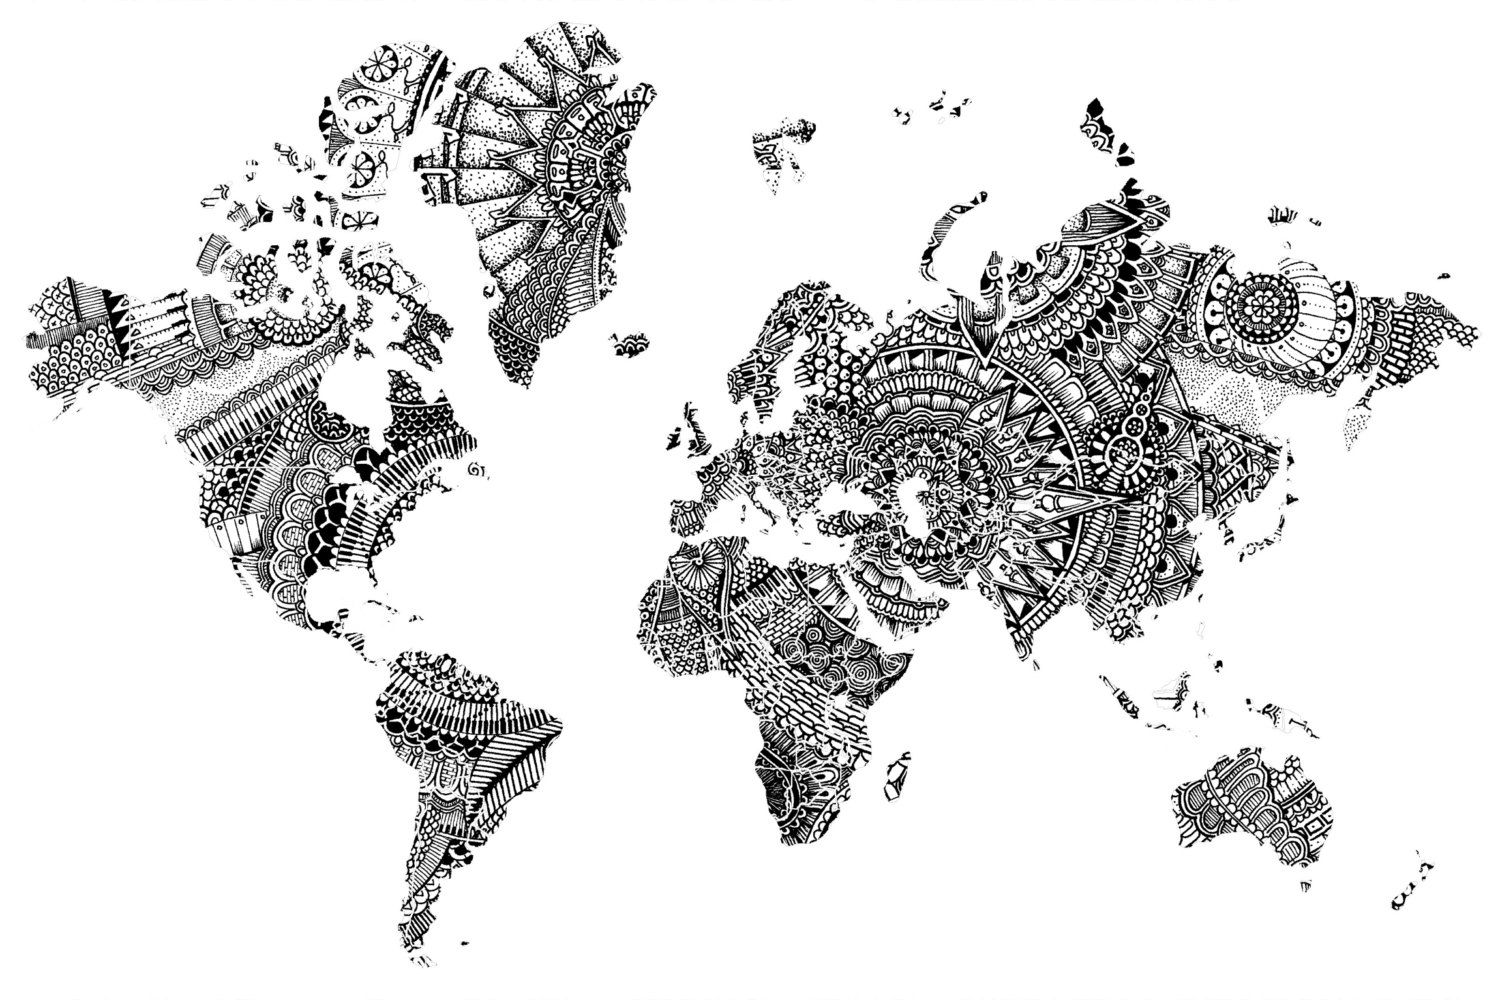 World map tribal pattern package of 3 by wallmaps on etsy tattoos world map tribal pattern package of 3 by wallmaps on etsy gumiabroncs Gallery